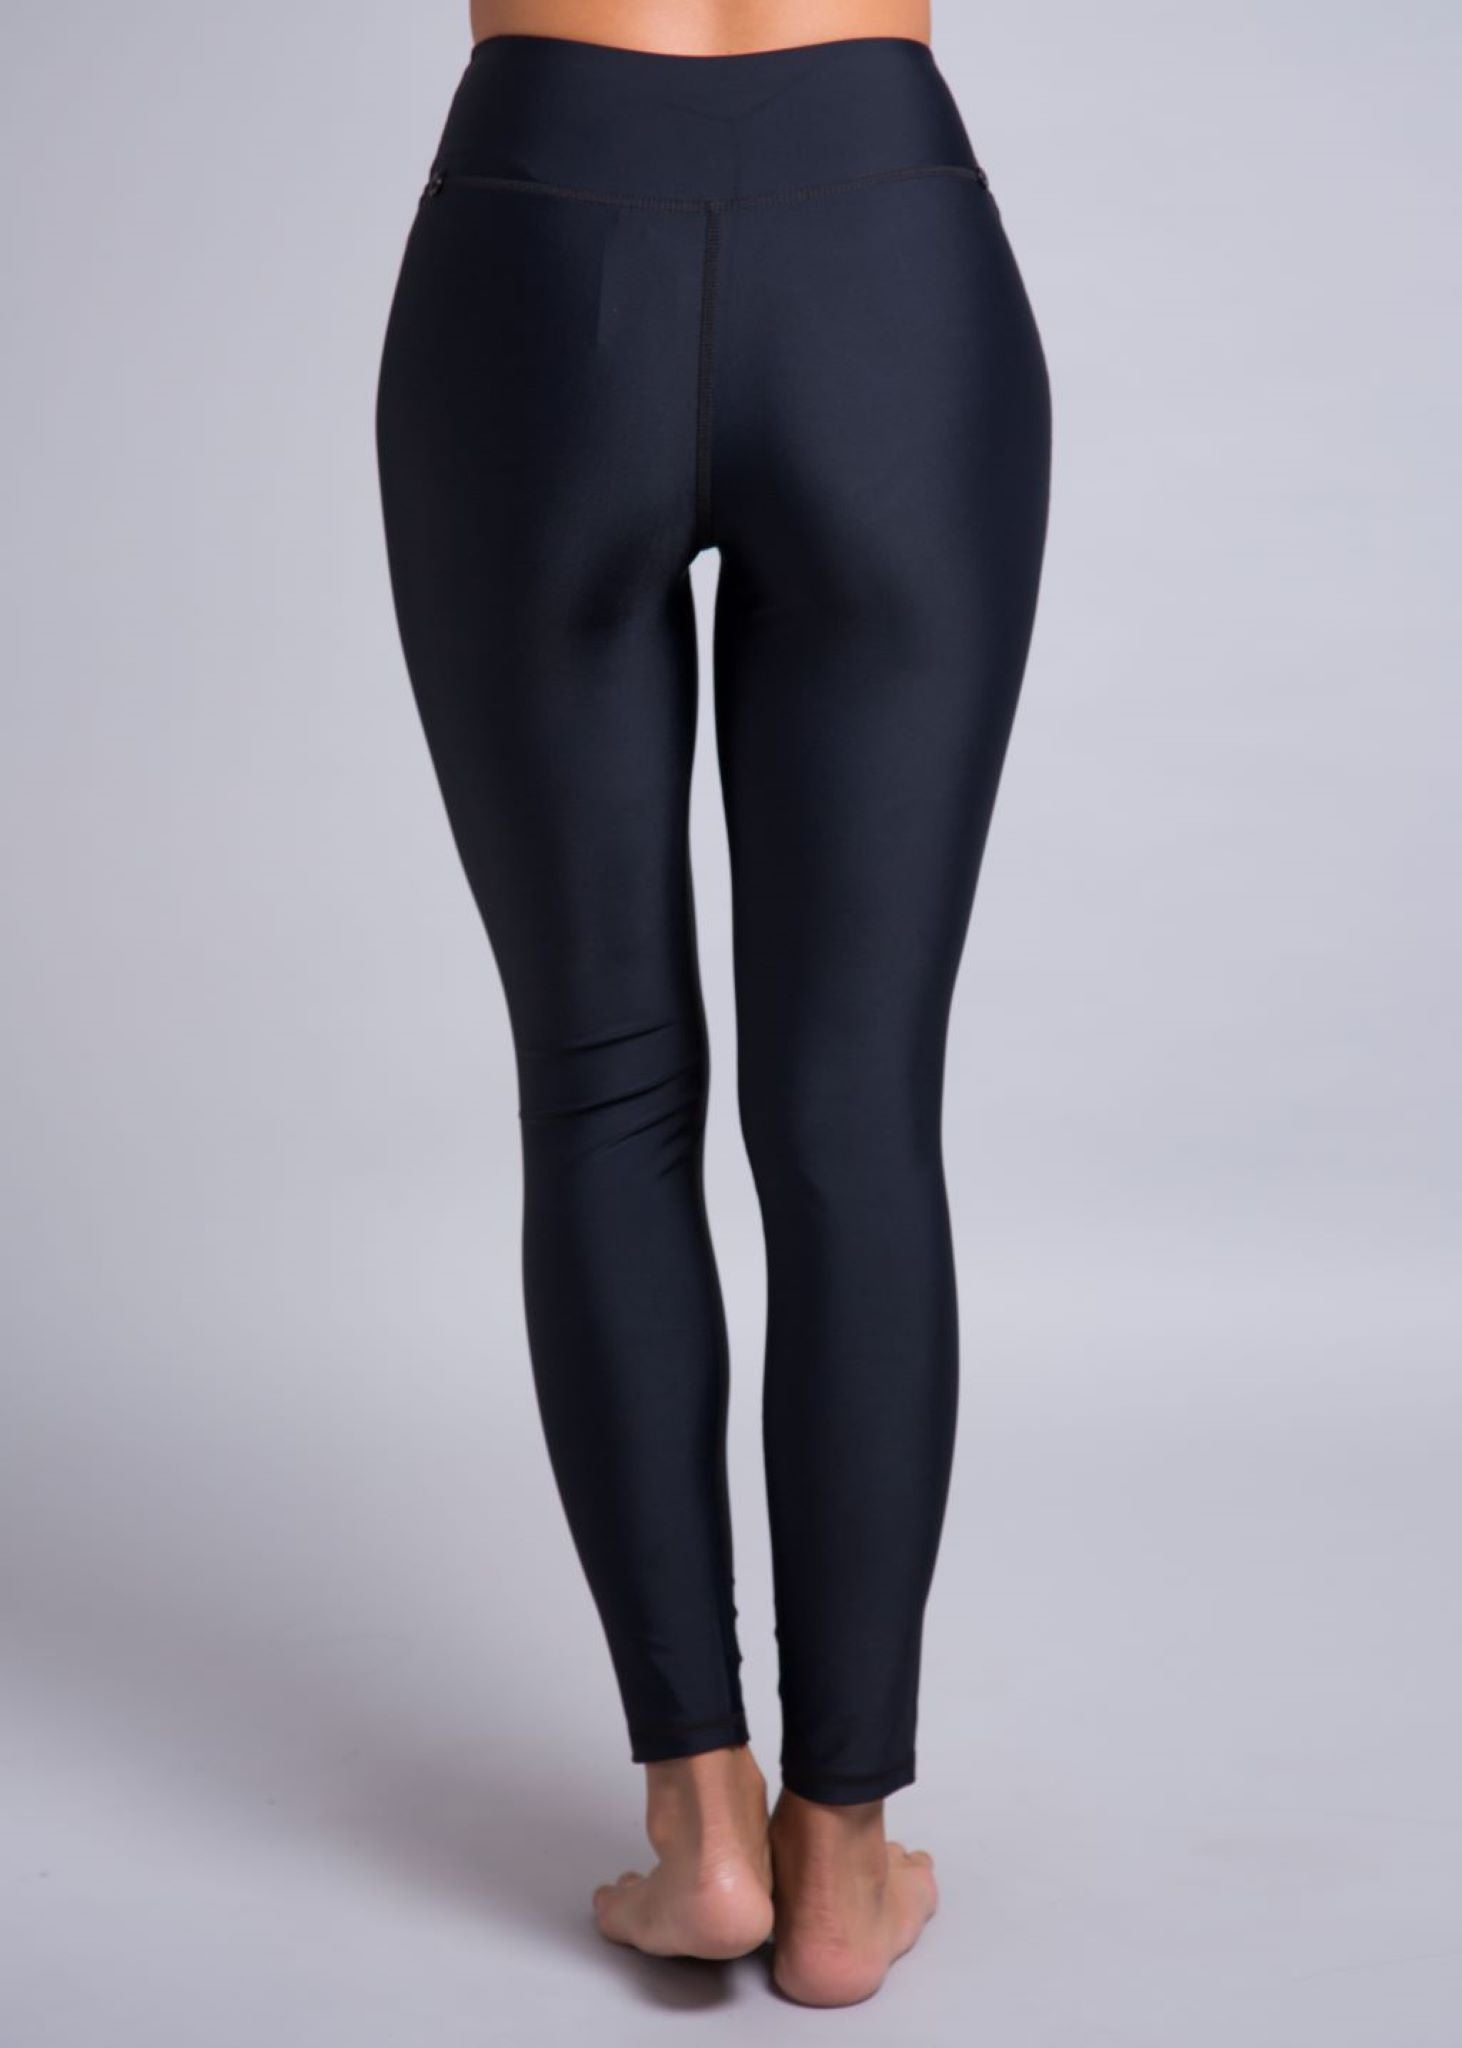 Swim Tights - Black